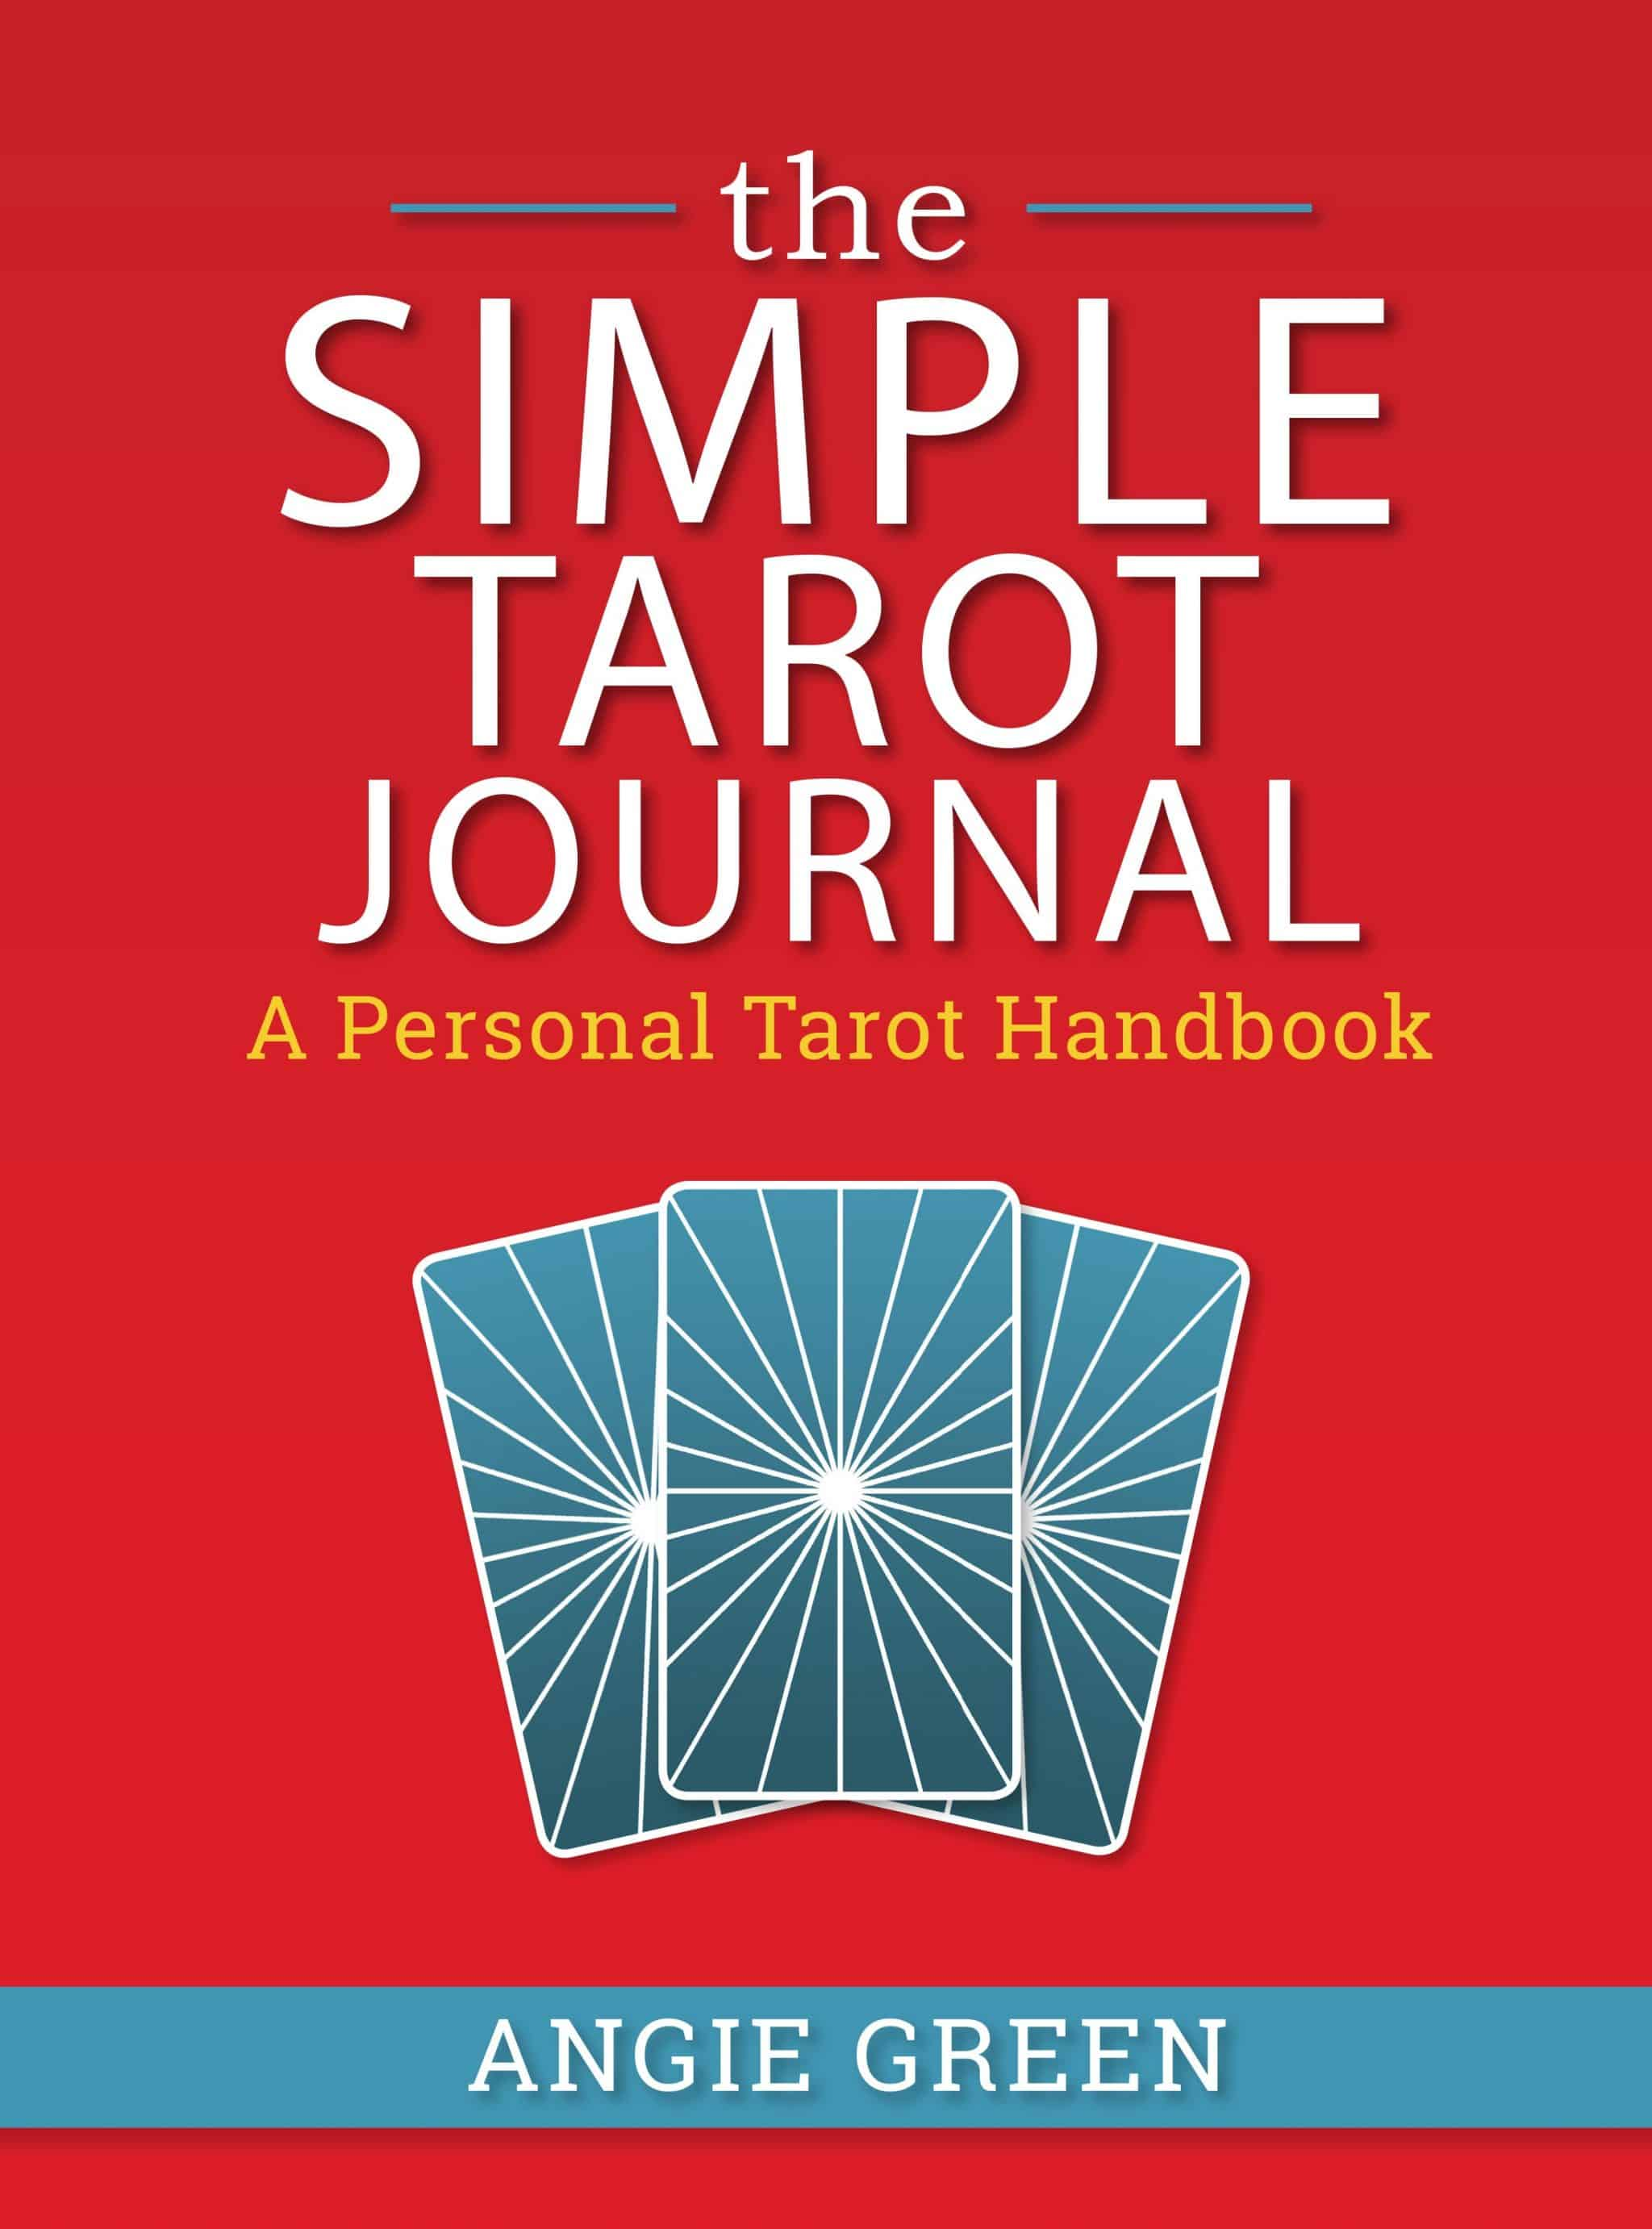 The Simple Tarot Journal is designed to help you learn (and remember!) the tarot card meanings as you create your very own personal tarot guidebook. Perfect for both tarot beginners and more advanced readers, the book is designed as a personal tarot handbook, with guided prompts to help you learn and remember the tarot card meanings. Get it today from The Simple Tarot.